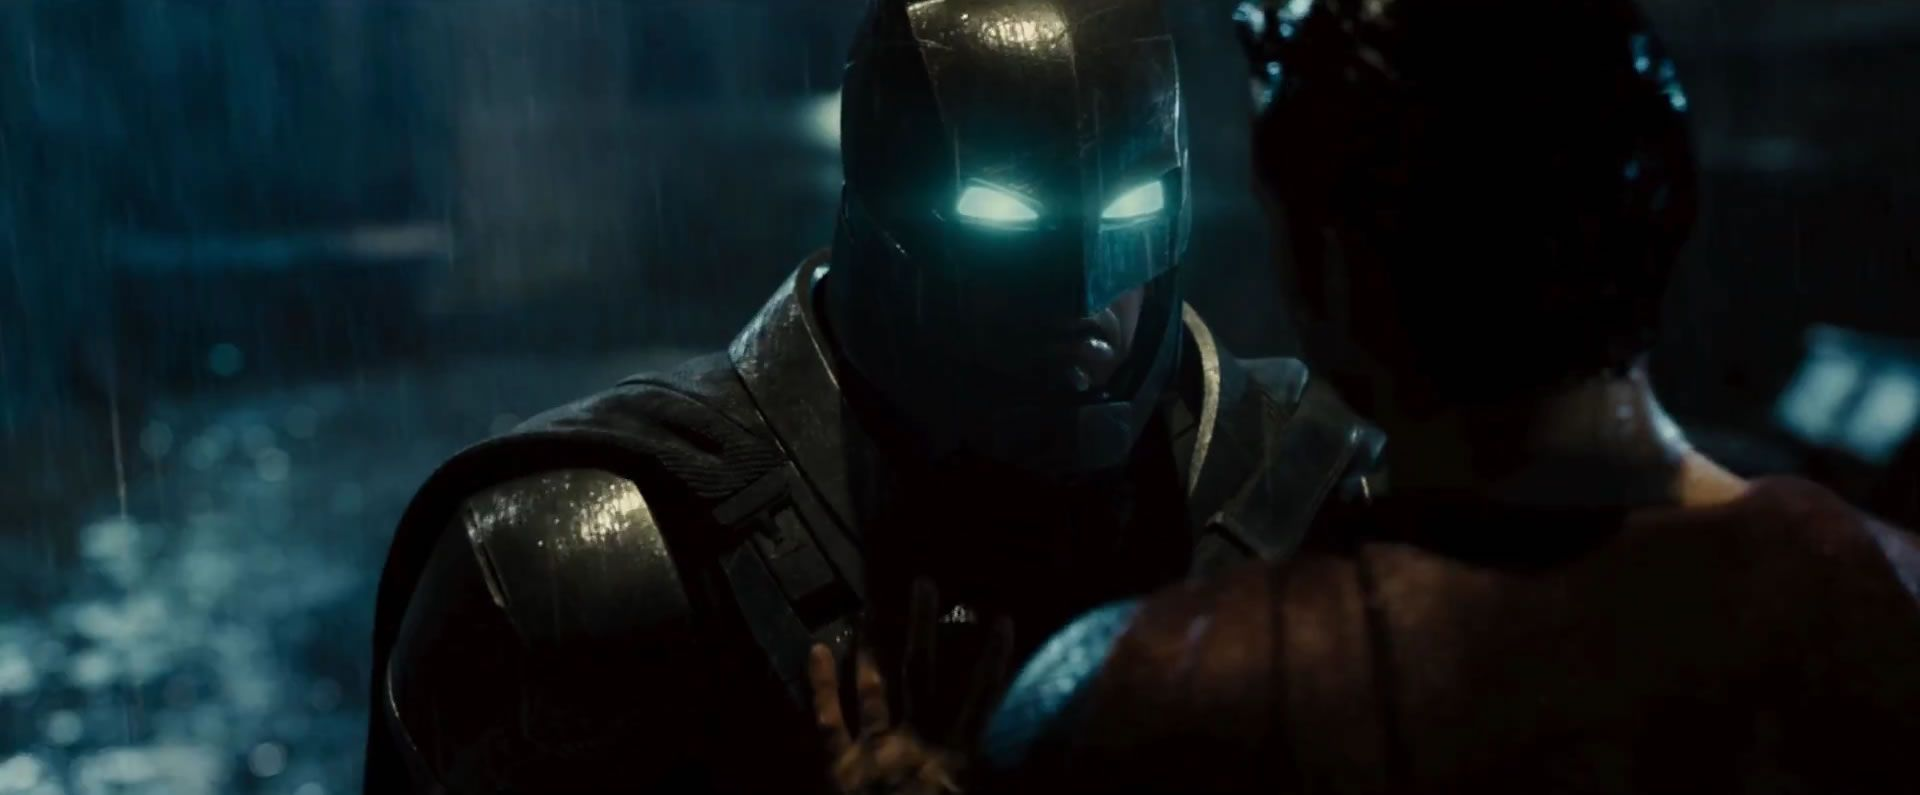 Willowbrook Amc 24 See Batman Vs Superman In Dolby Cinema At Select Theaters Collider